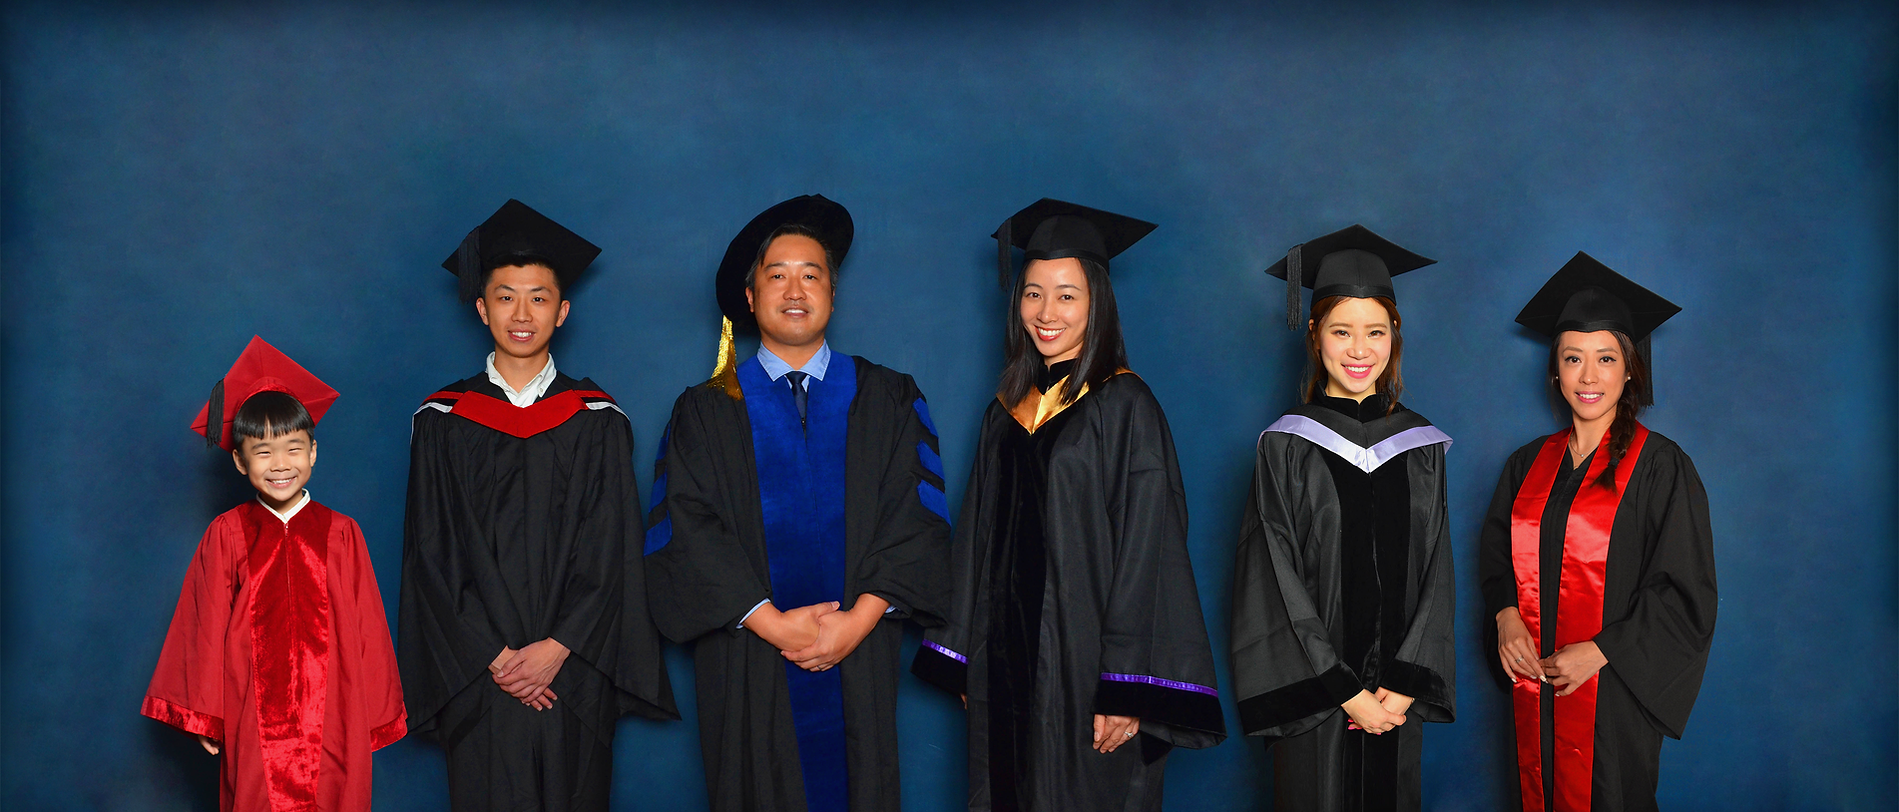 We design, produce, store, rent and sell primary, secondary, college and university graduation gowns / academic dresses in Hong Kong  設計、租借、 購買香港小學畢業袍、中學畢業袍、 大學畢業袍 | 畢業袍一條龍服務 學士袍、 碩士袍、 博士袍